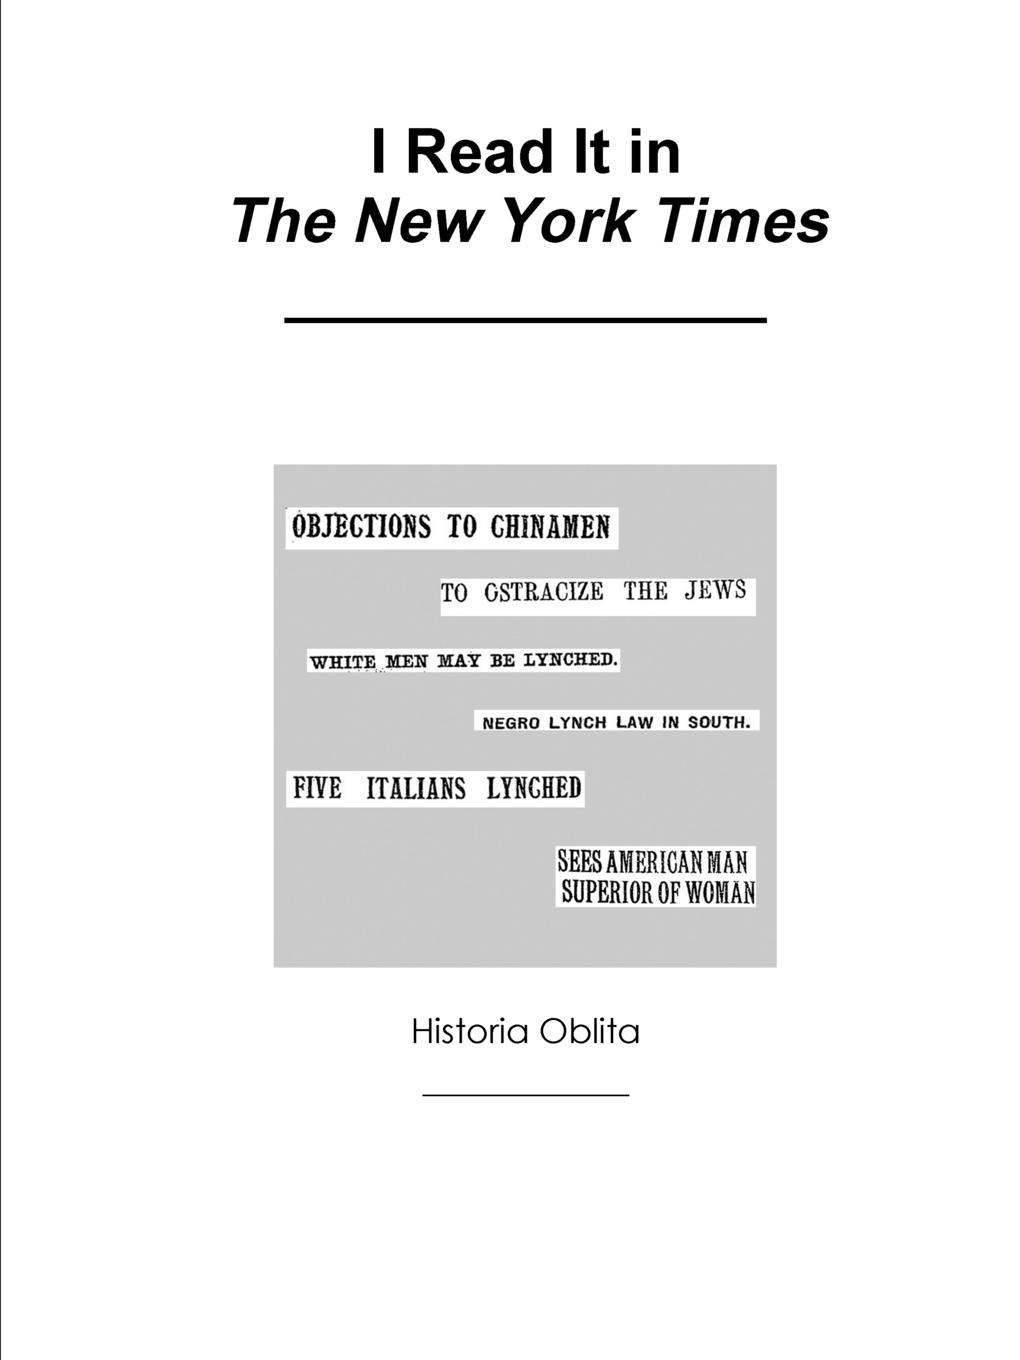 Historia Oblita I Read It in The New York Times richard overy the times history of the world